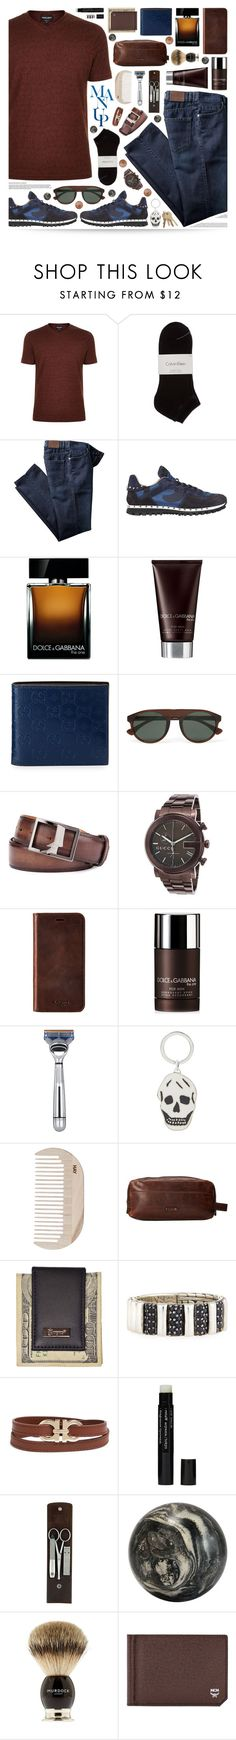 """""""Man Up"""" by ealkhaldi ❤ liked on Polyvore featuring Giorgio Armani, Calvin Klein, Valentino, Dolce&Gabbana, Gucci, Berluti, Knomo, The Art of Shaving, Alexander McQueen and HAY"""